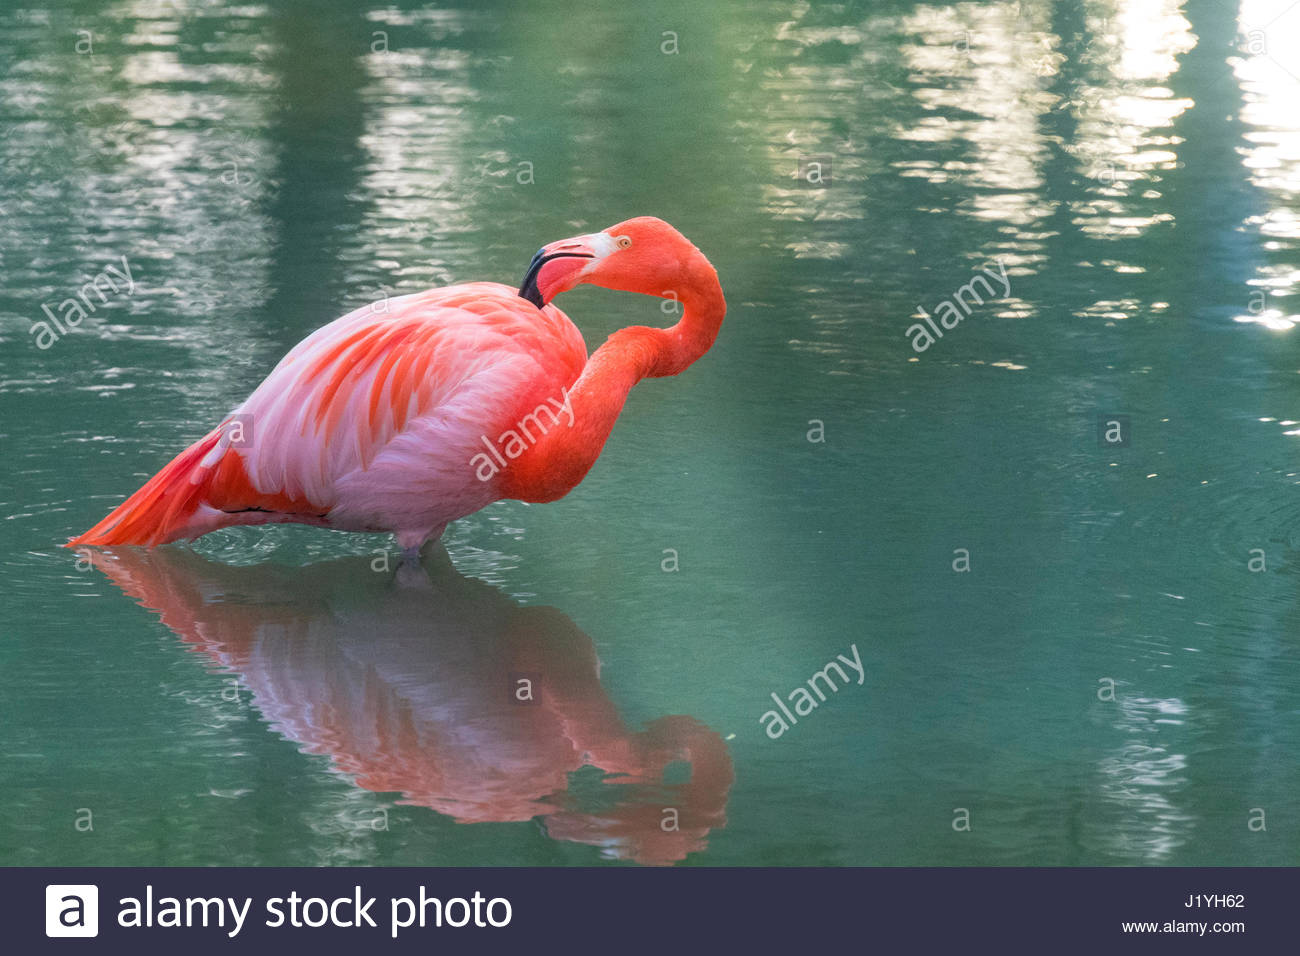 Colorful flamingo bird in a Cuban lake. Flamingos or flamingoes are a type of wading bird in the family Phoenicopteridae, - Stock Image